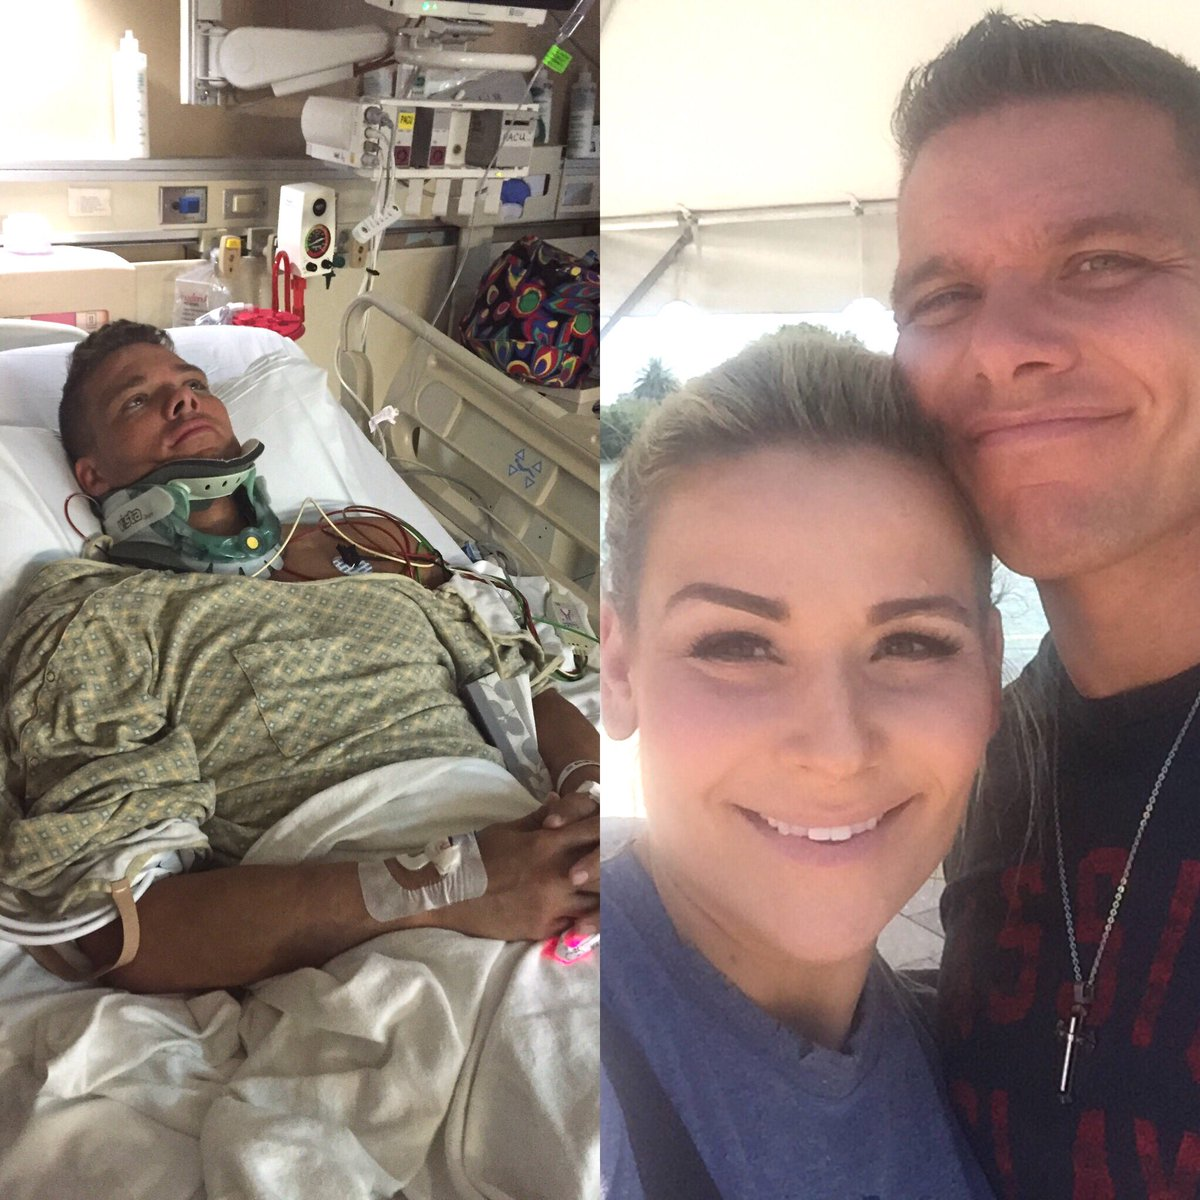 """One year ago today, I had c1-c2 spinal fusion. I'm grateful for a """"second chance at life."""" https://t.co/jPzr45T3QF"""